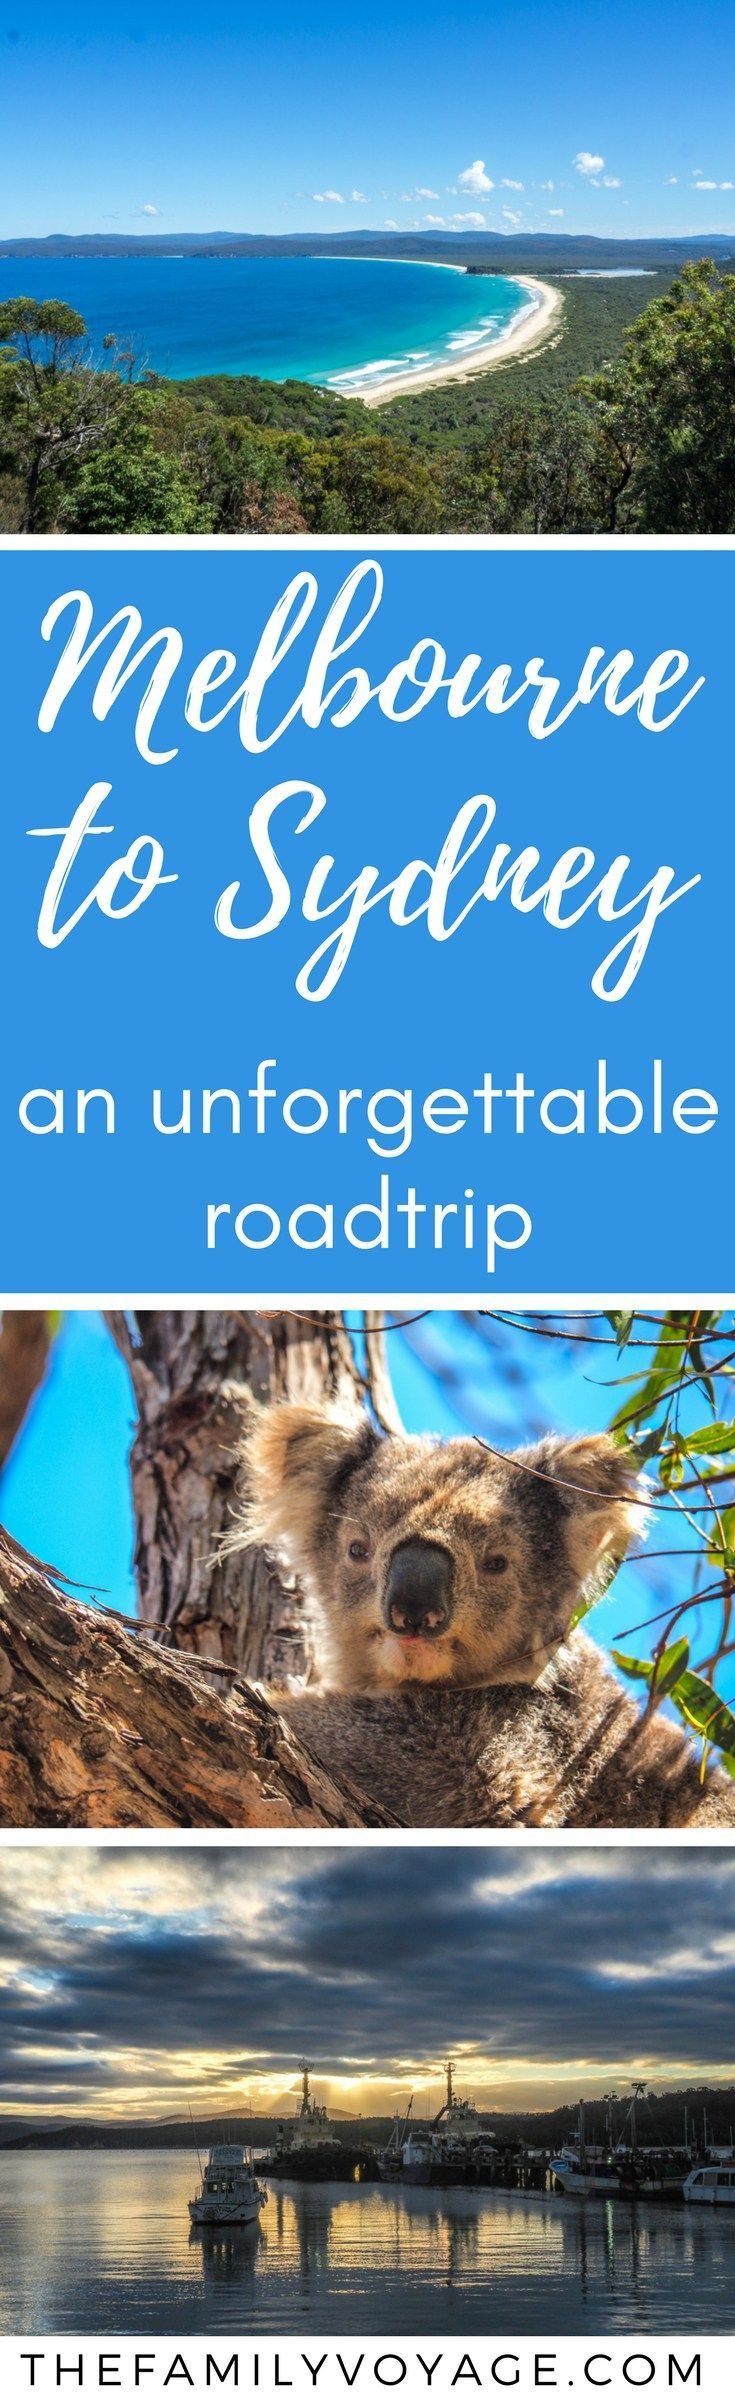 Our Australia roadtrip from Melbourne to Sydney was truly unforgettable! We saw wild kangaroos and koalas, swam at secluded coves and visited lighthouses and rocky cliffs. Don't miss this spectacular drive! Our ultimate Sapphire Coast road trip planner will tell you what to see and where to stop. Stop dreaming, get driving. #Australia #travel #travelplanning #familytravel #sydney #melbourne #roadtrip